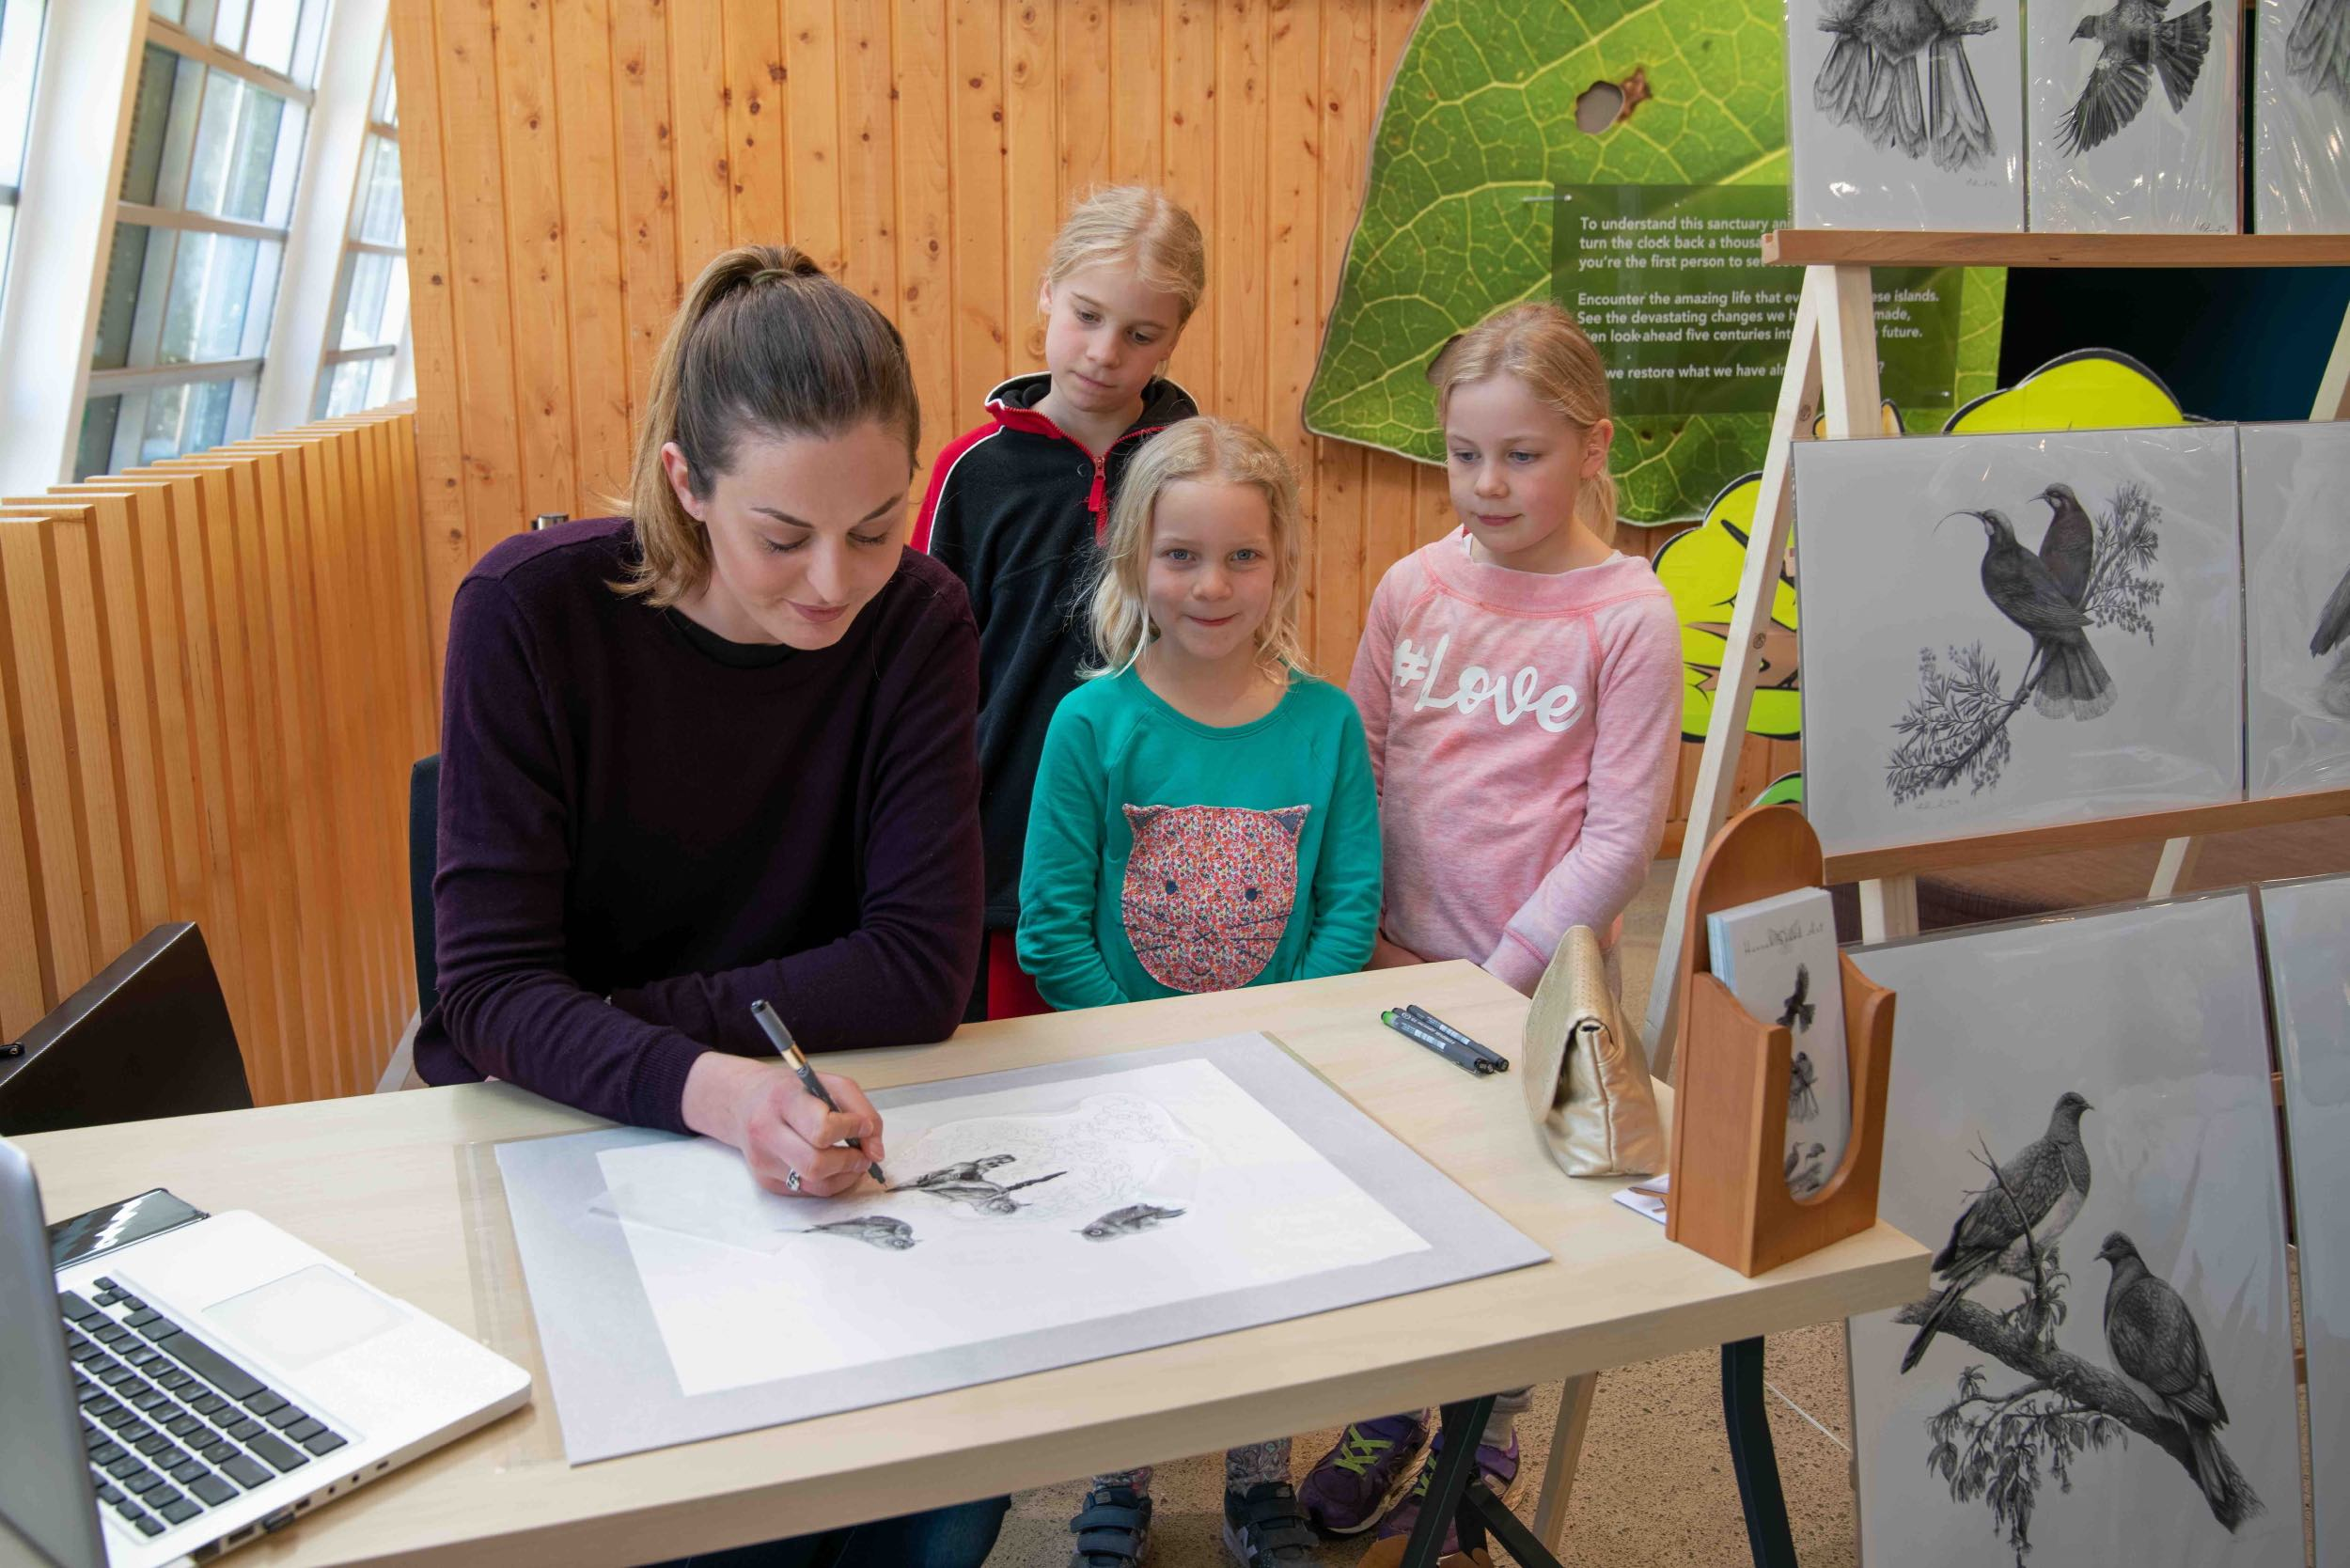 Hannah draws custom artwork, with Jusrine's girls watching. Photograph taken at live drawing event at Zealandia Ecosanctuary by   Judi Lapsley Miller   .